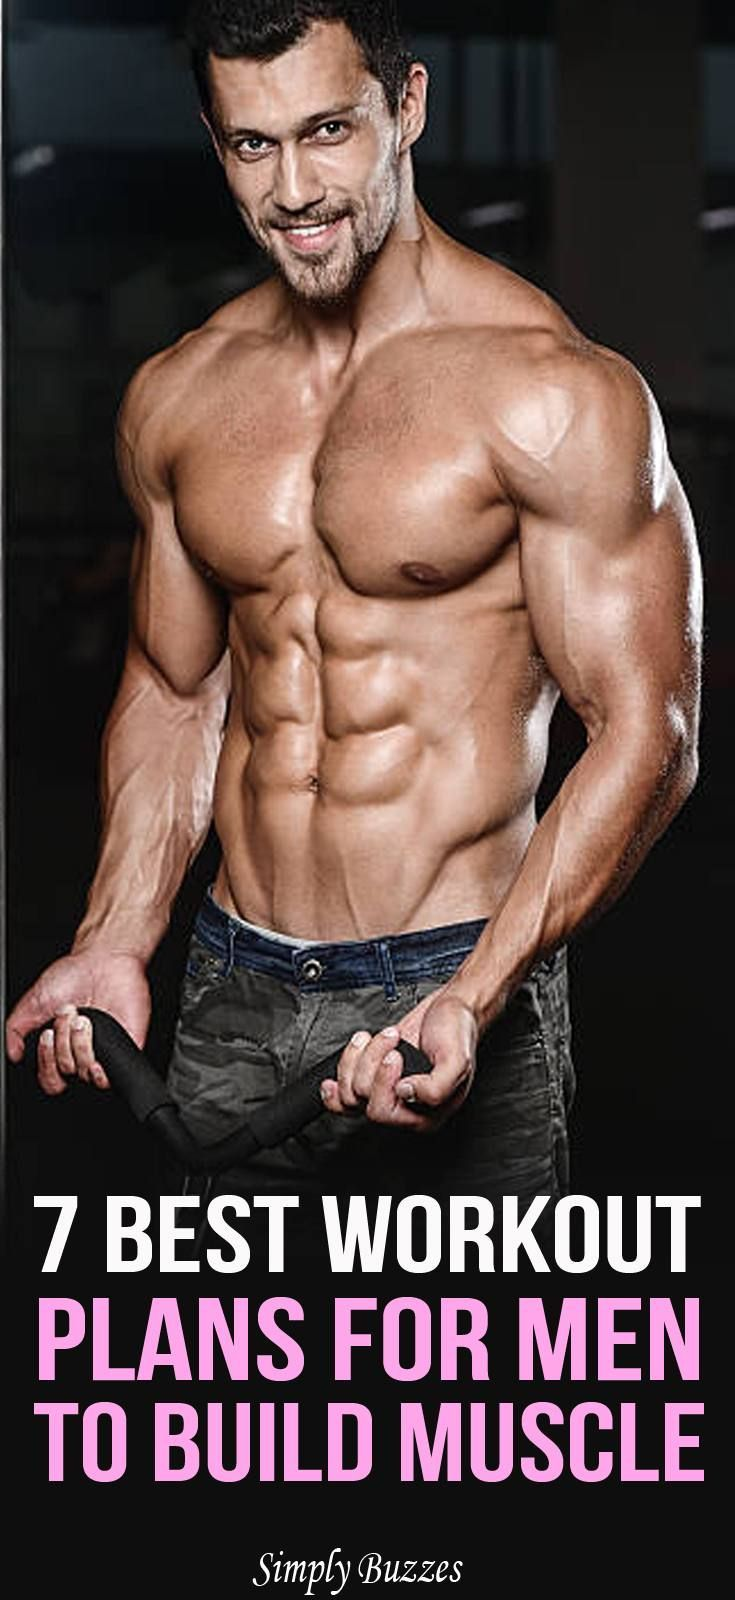 7 Best Workout Plans For Men To Build Muscle Workout plan for men Best workout plan Workout plan